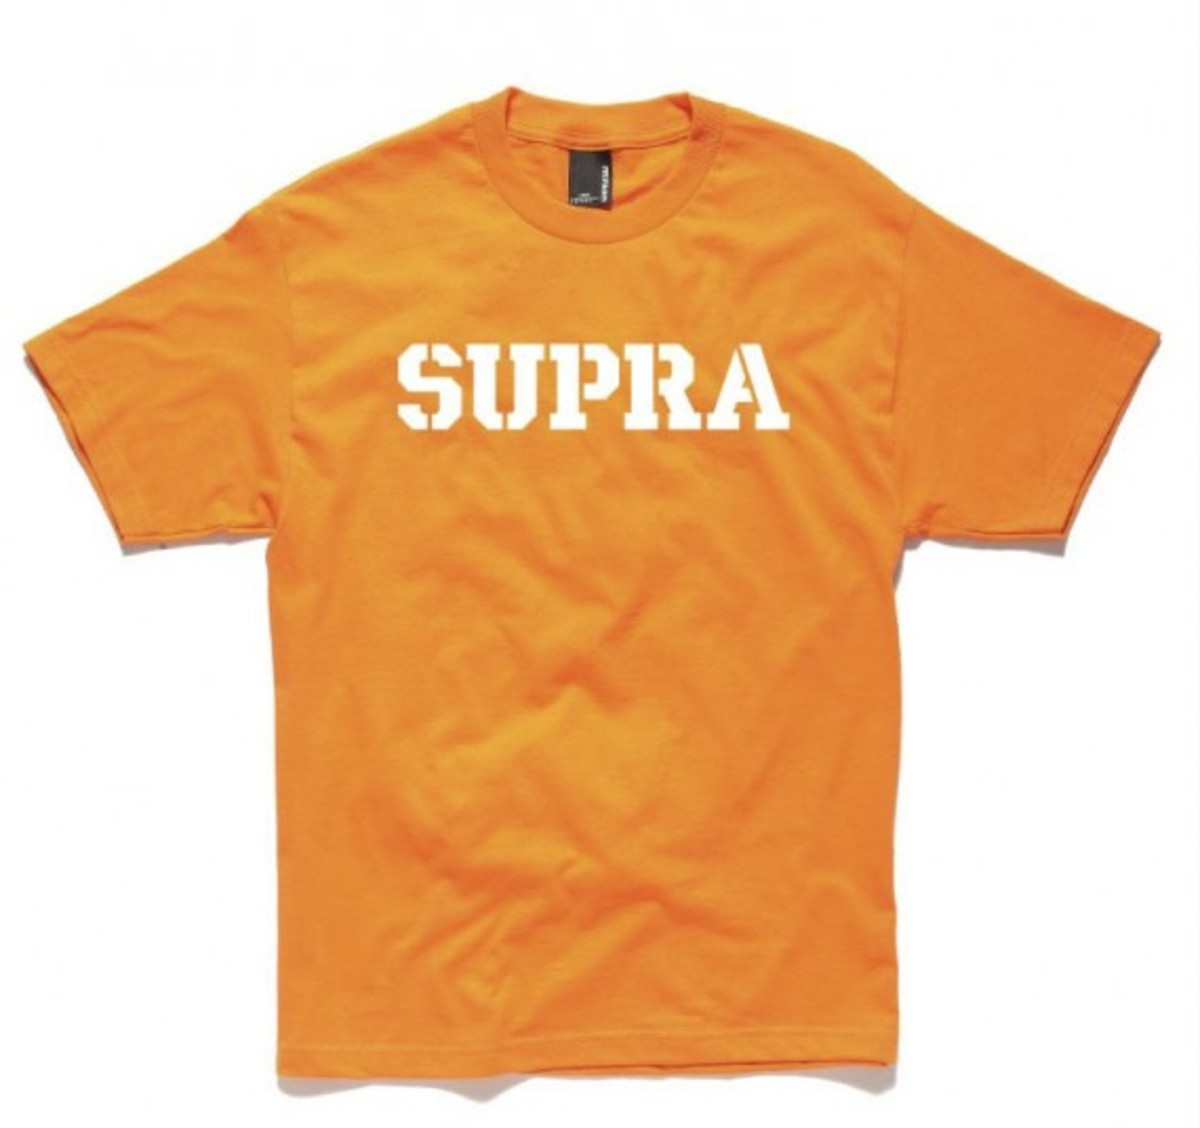 supra-mark-tshirt-08